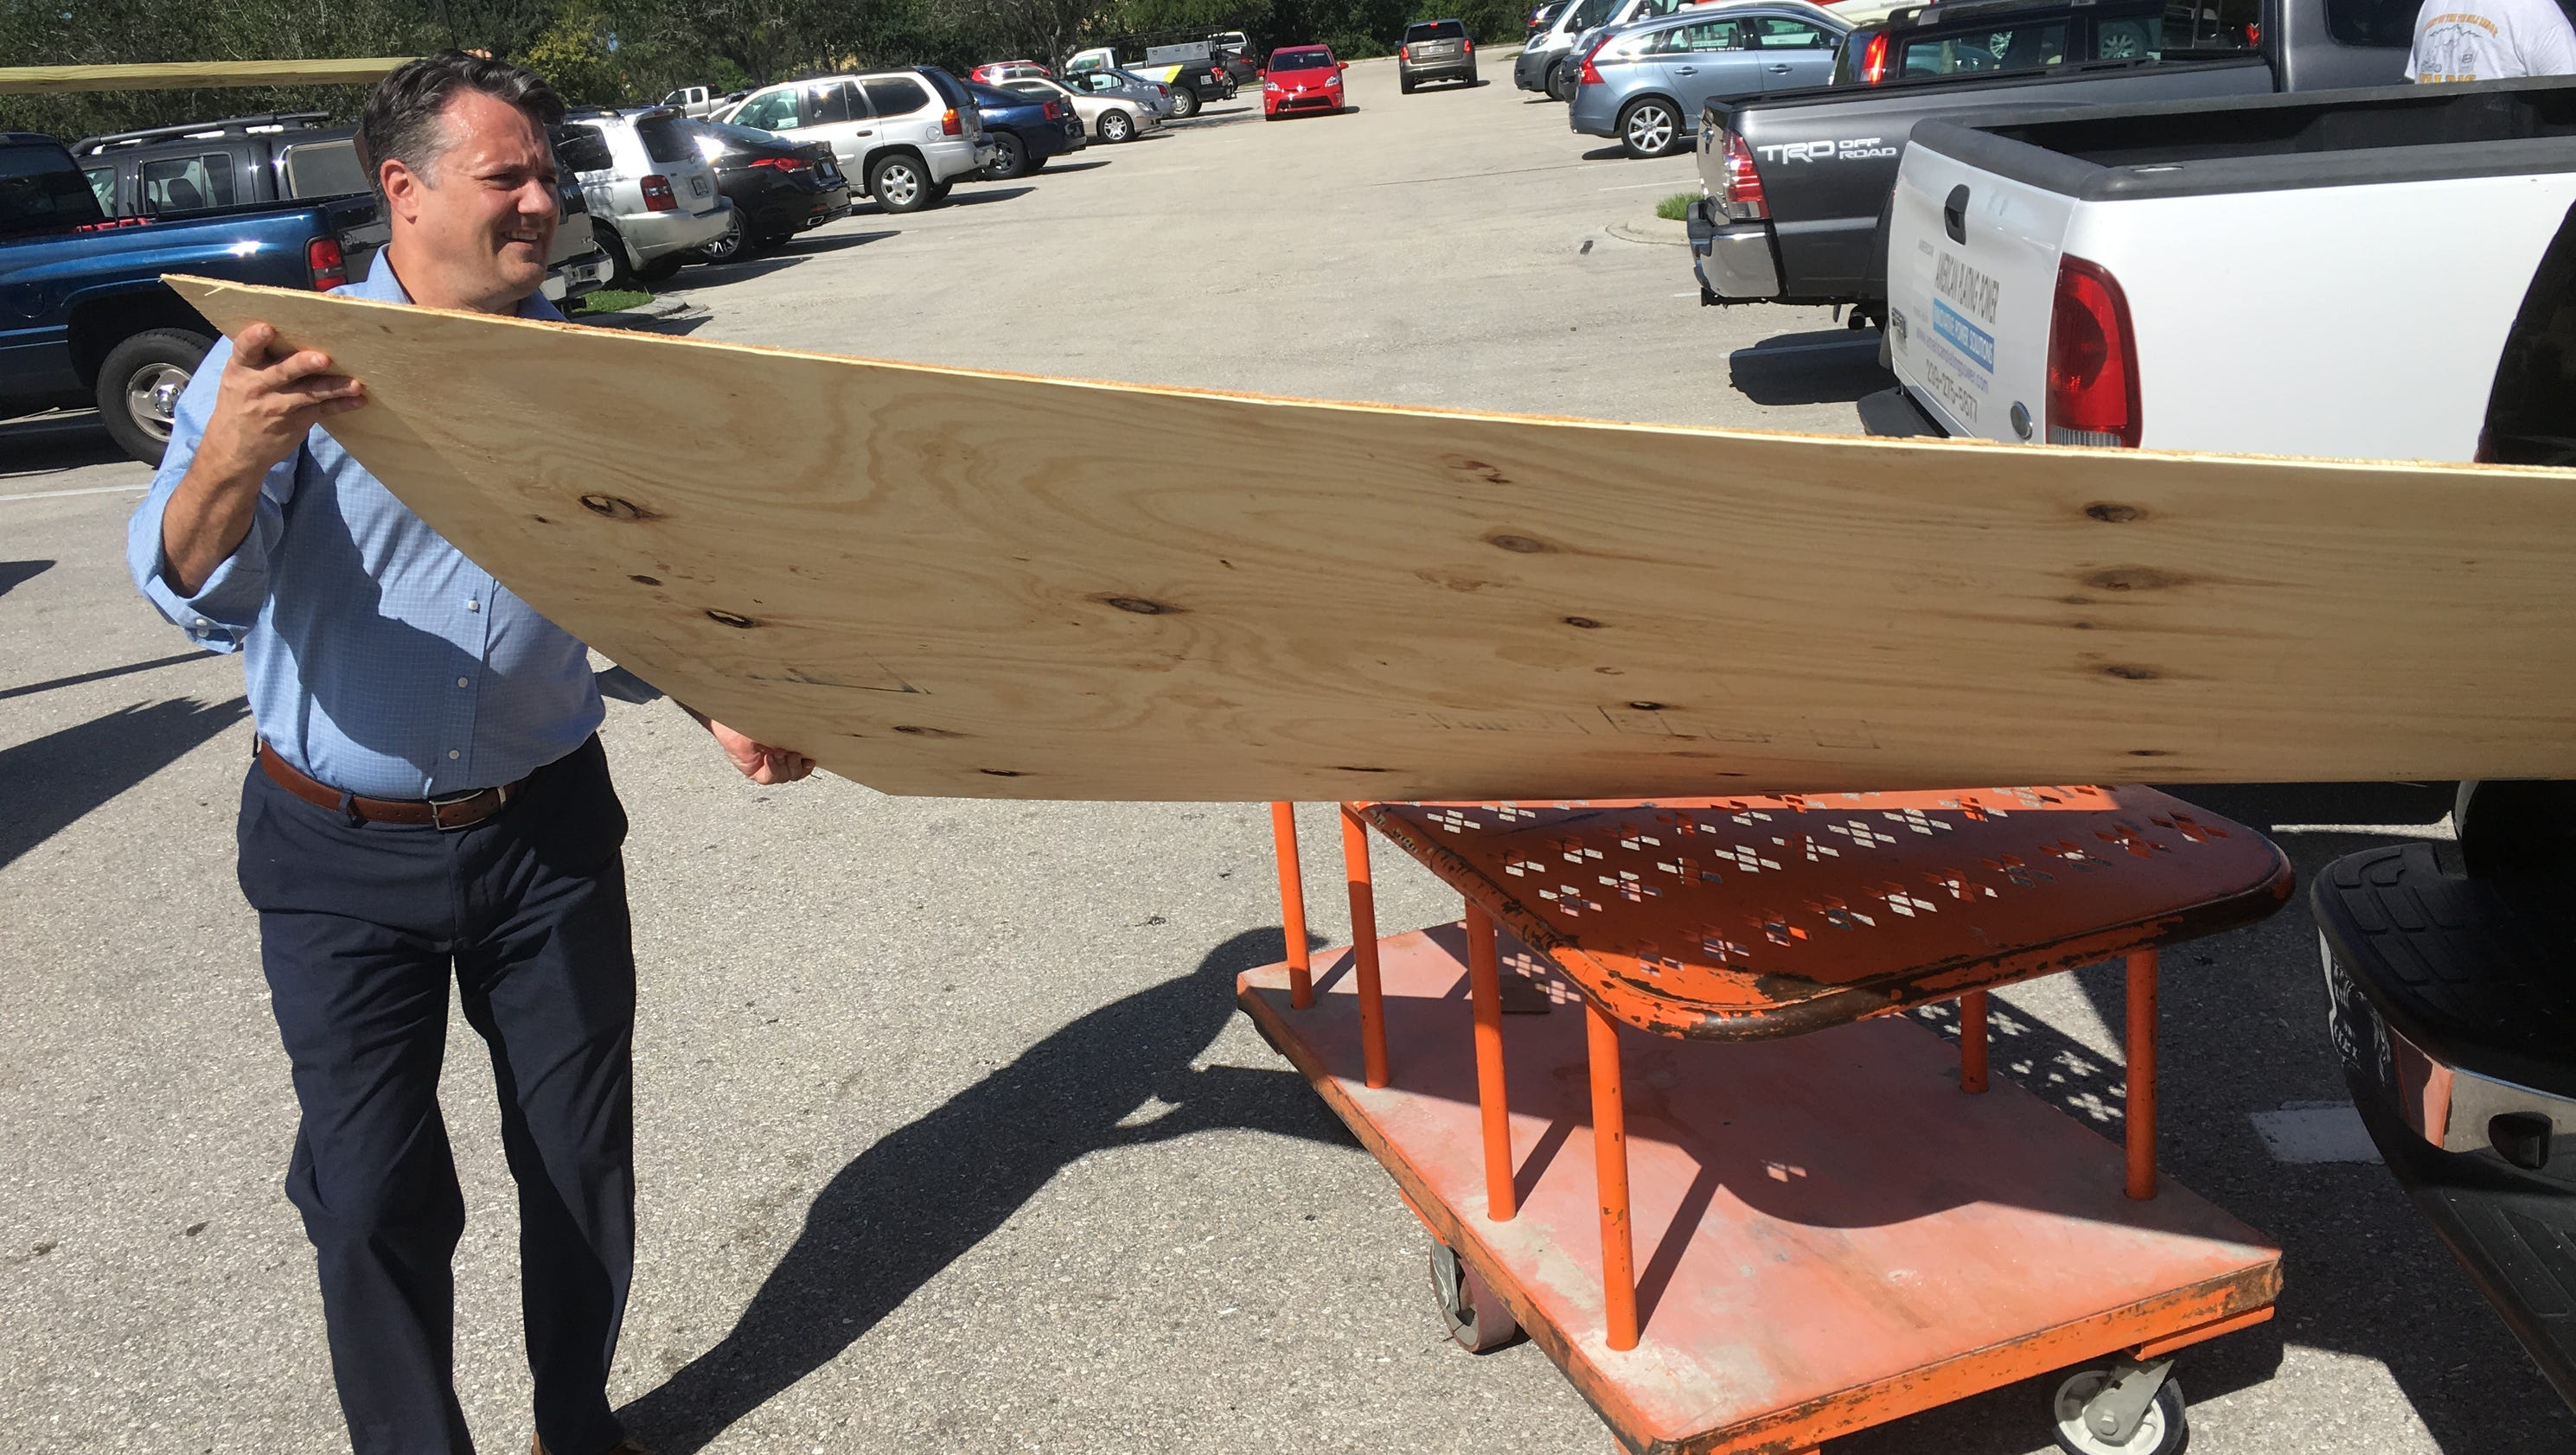 Home Depot to hire 540 in Naples Fort Myers